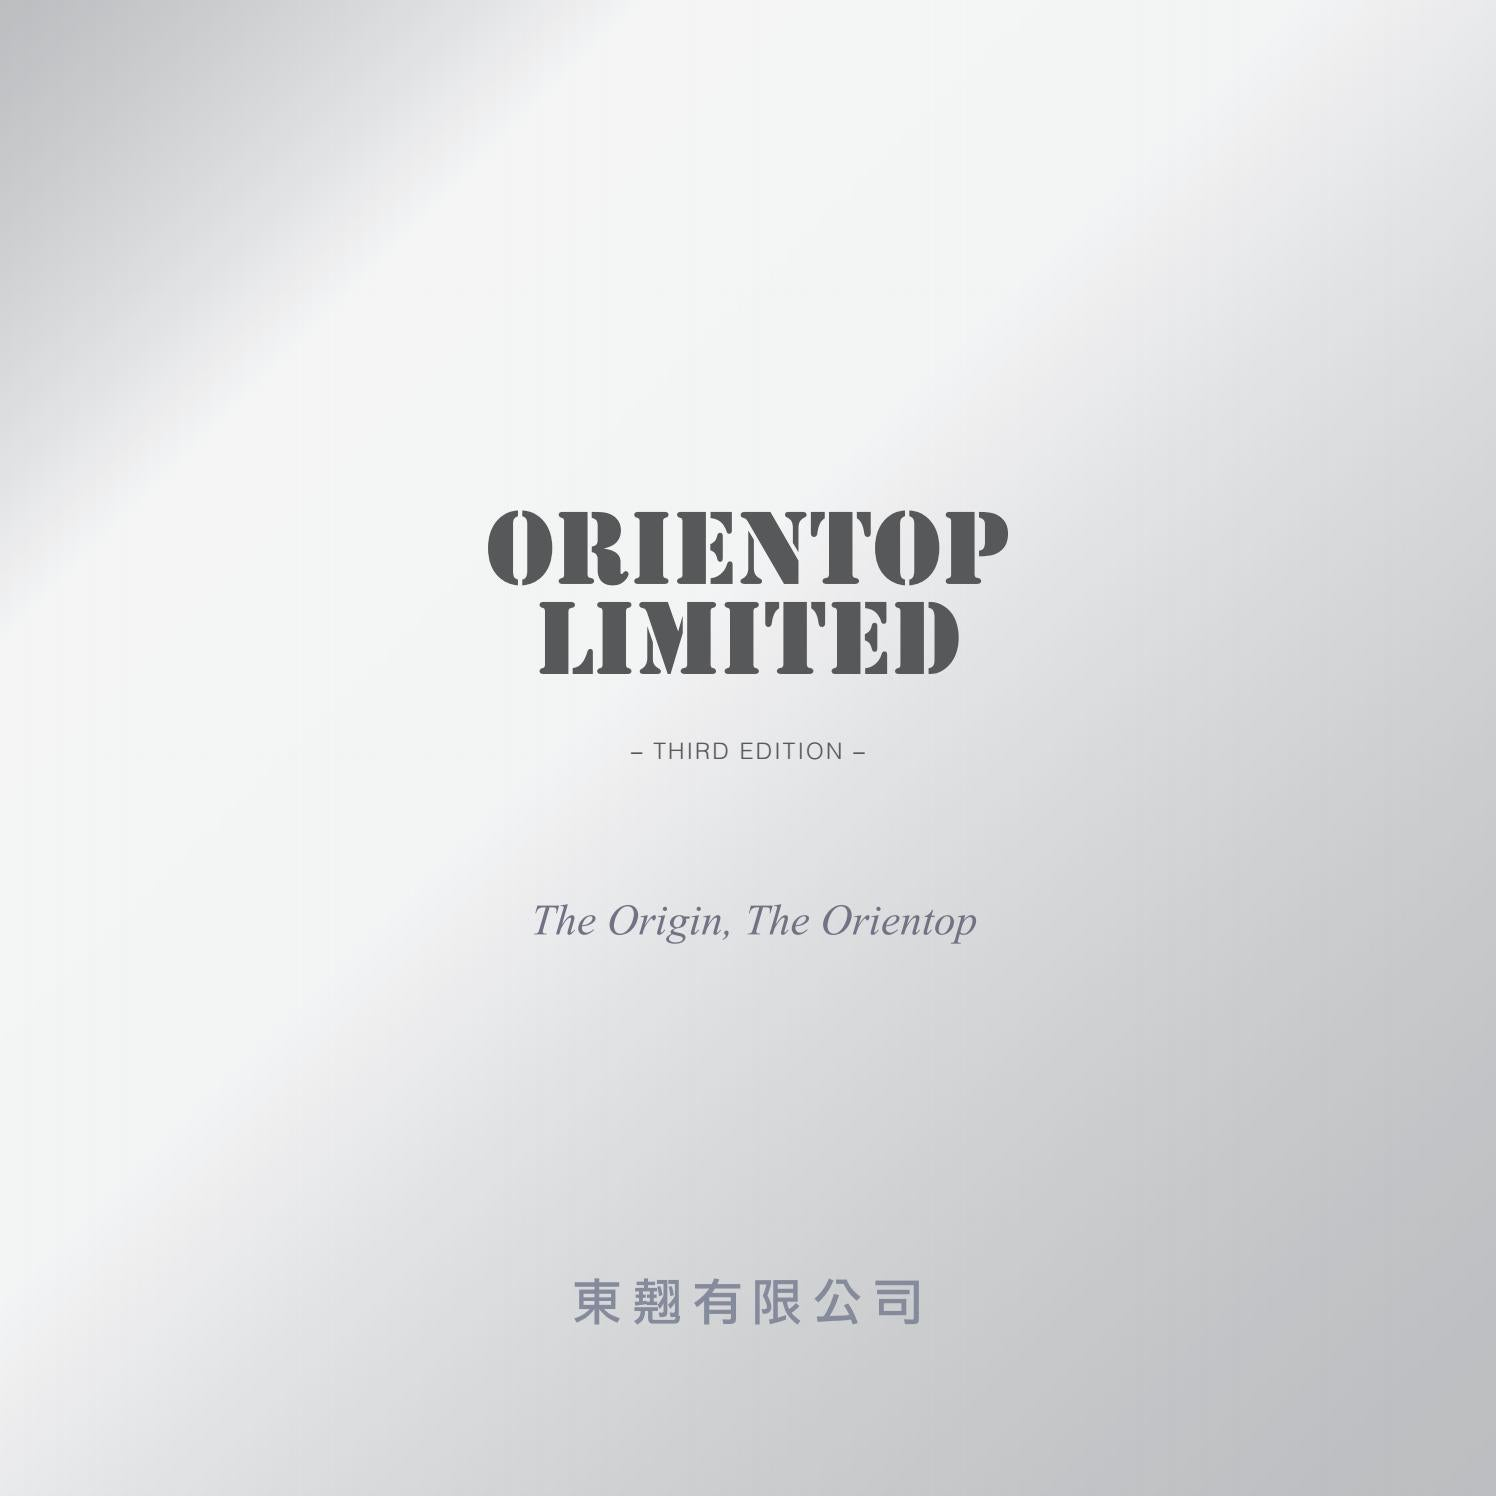 Orientop Catalogs 2016 By Orientop Ltd Issuu - Colored-and-clear-glass-tiles-by-vetrocolor